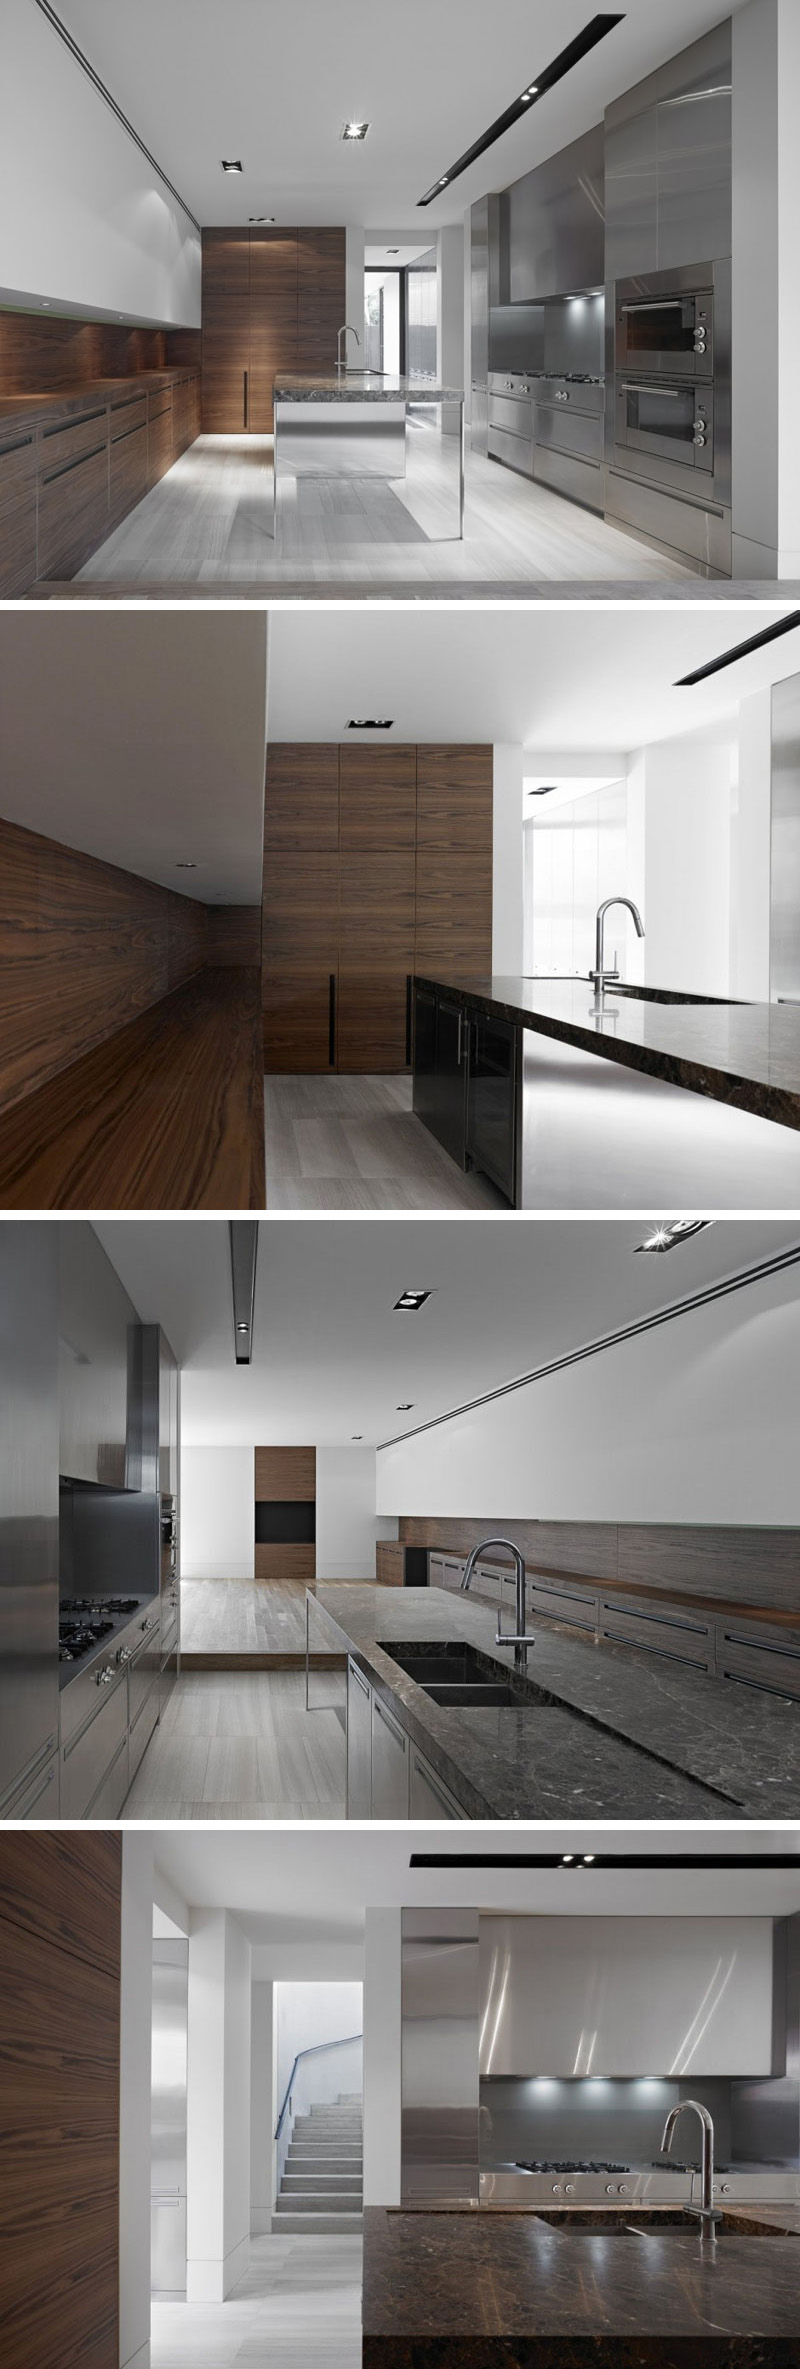 This modern kitchen features dark wood lower cabinets and white upper cabinets. The long island in the centre of the kitchen has a glossy marble top and a mirrored stainless steel base that matches the stainless steel cabinets along the other wall.